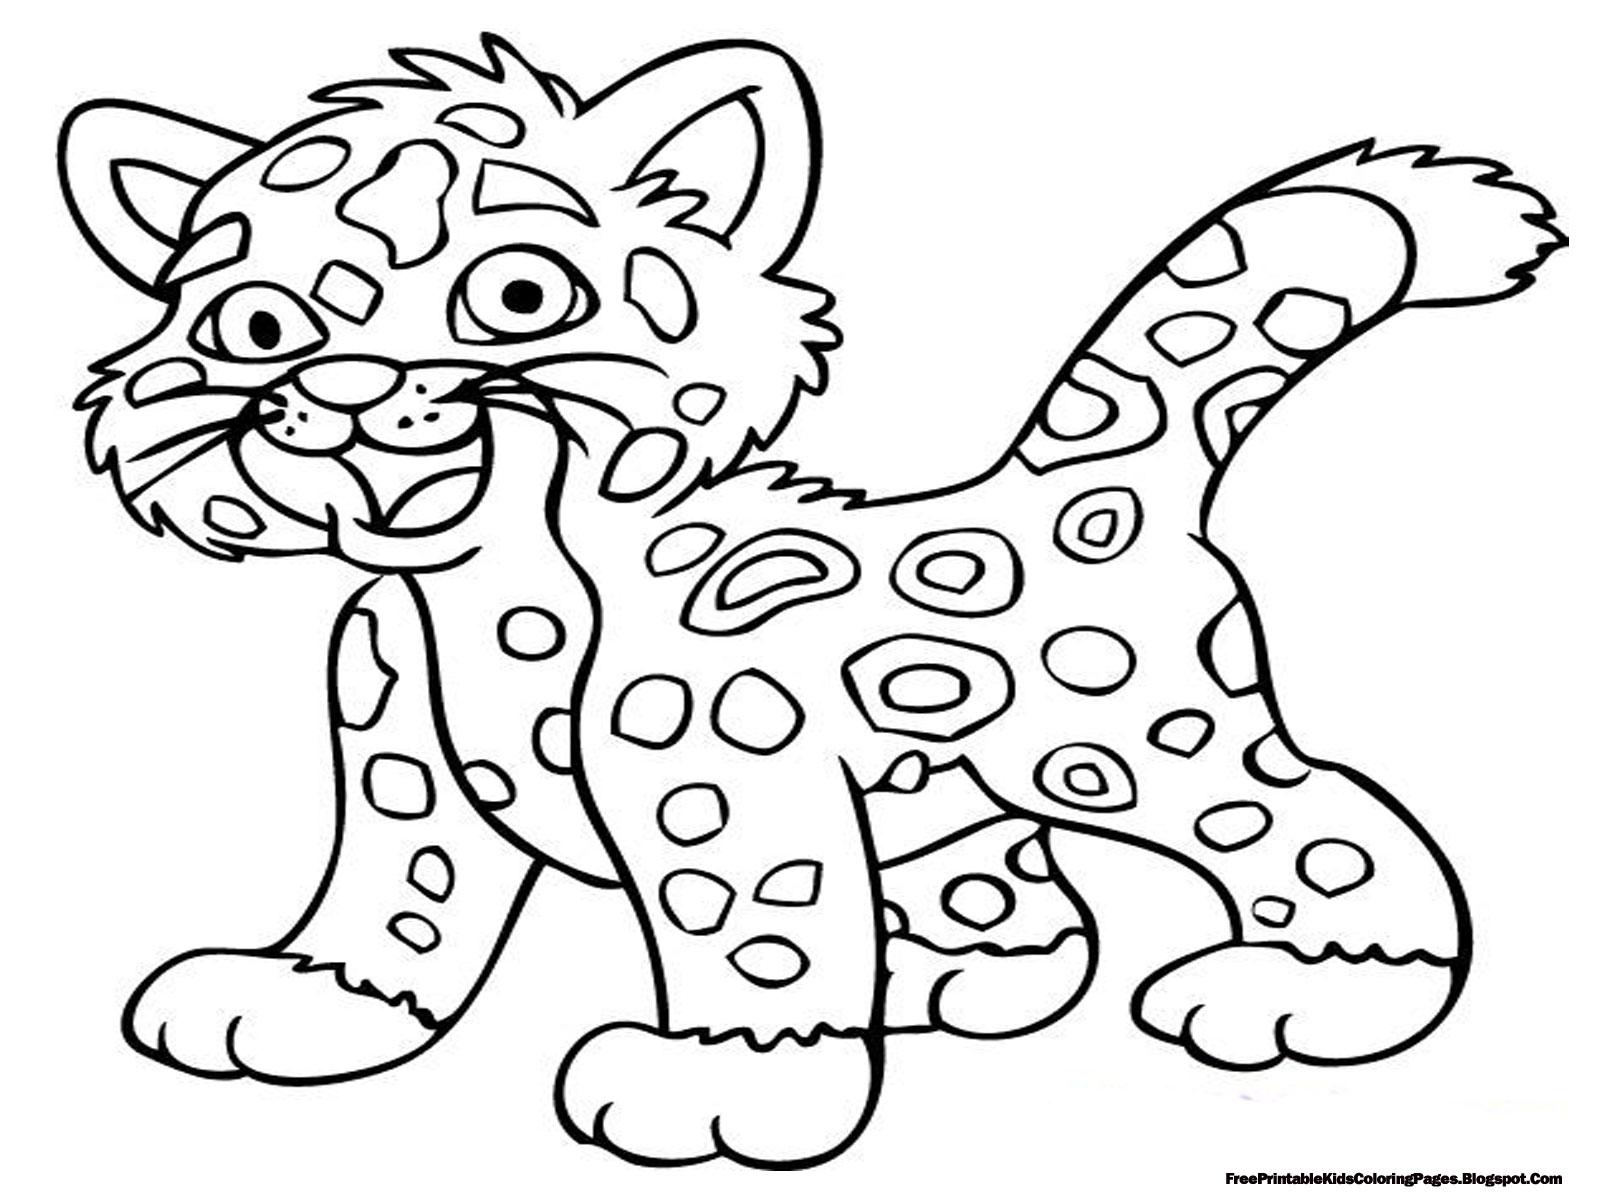 jaguar pictures to color jaguar coloring pages to download and print for free color to pictures jaguar